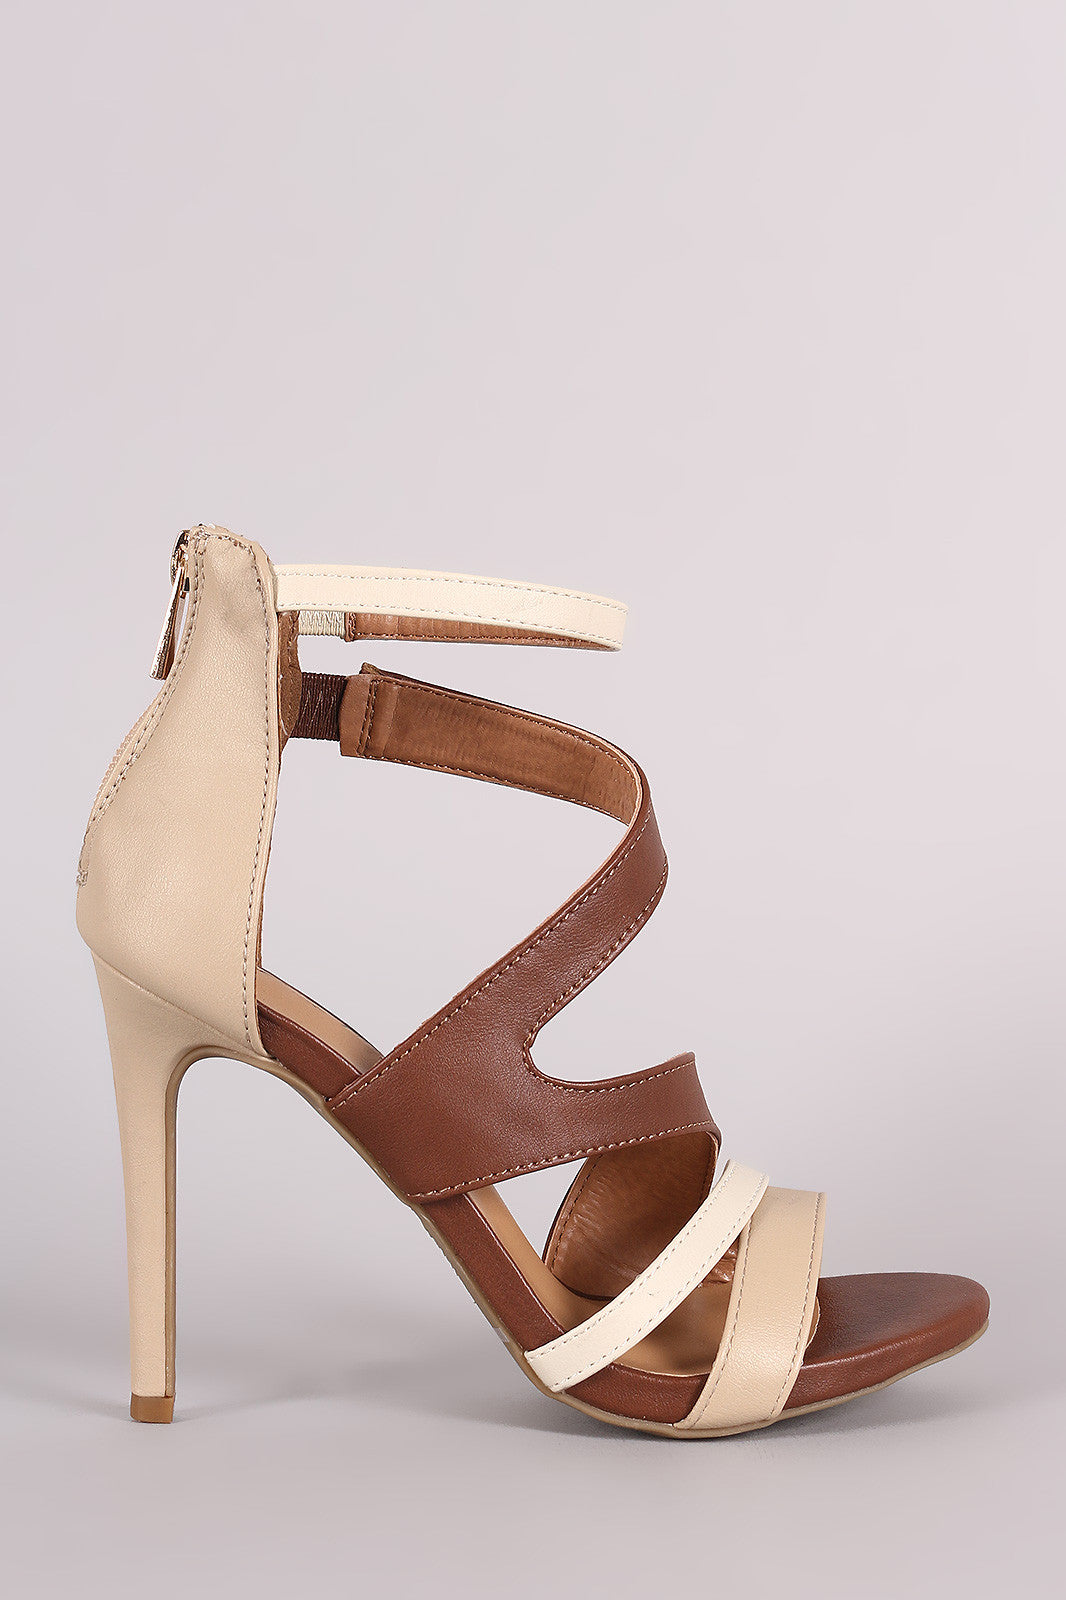 Anne Michelle Strappy Slanted Peep Toe Stiletto Heel - Thick 'N' Curvy Shop - 1